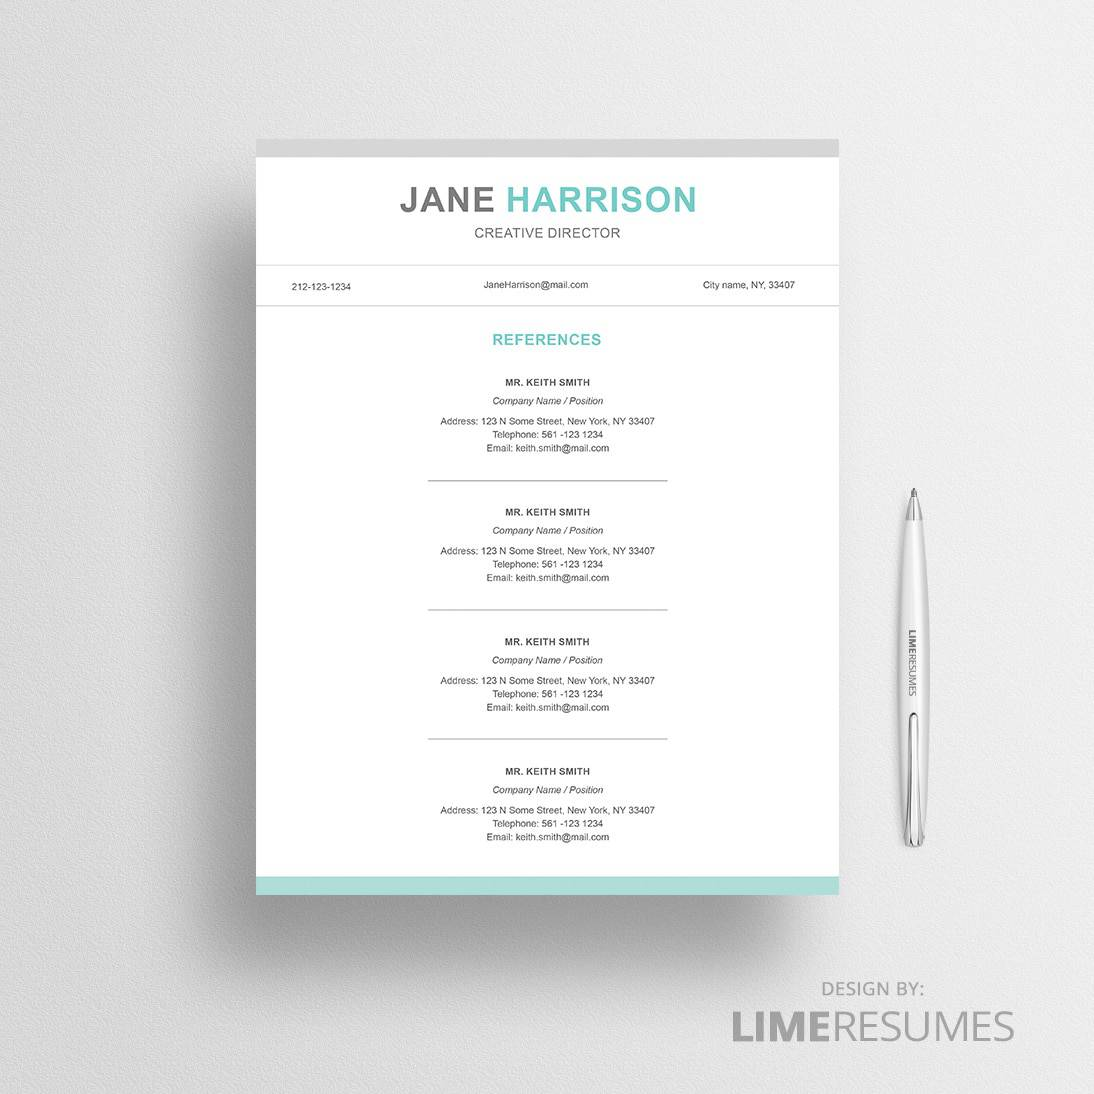 example of resume reference page